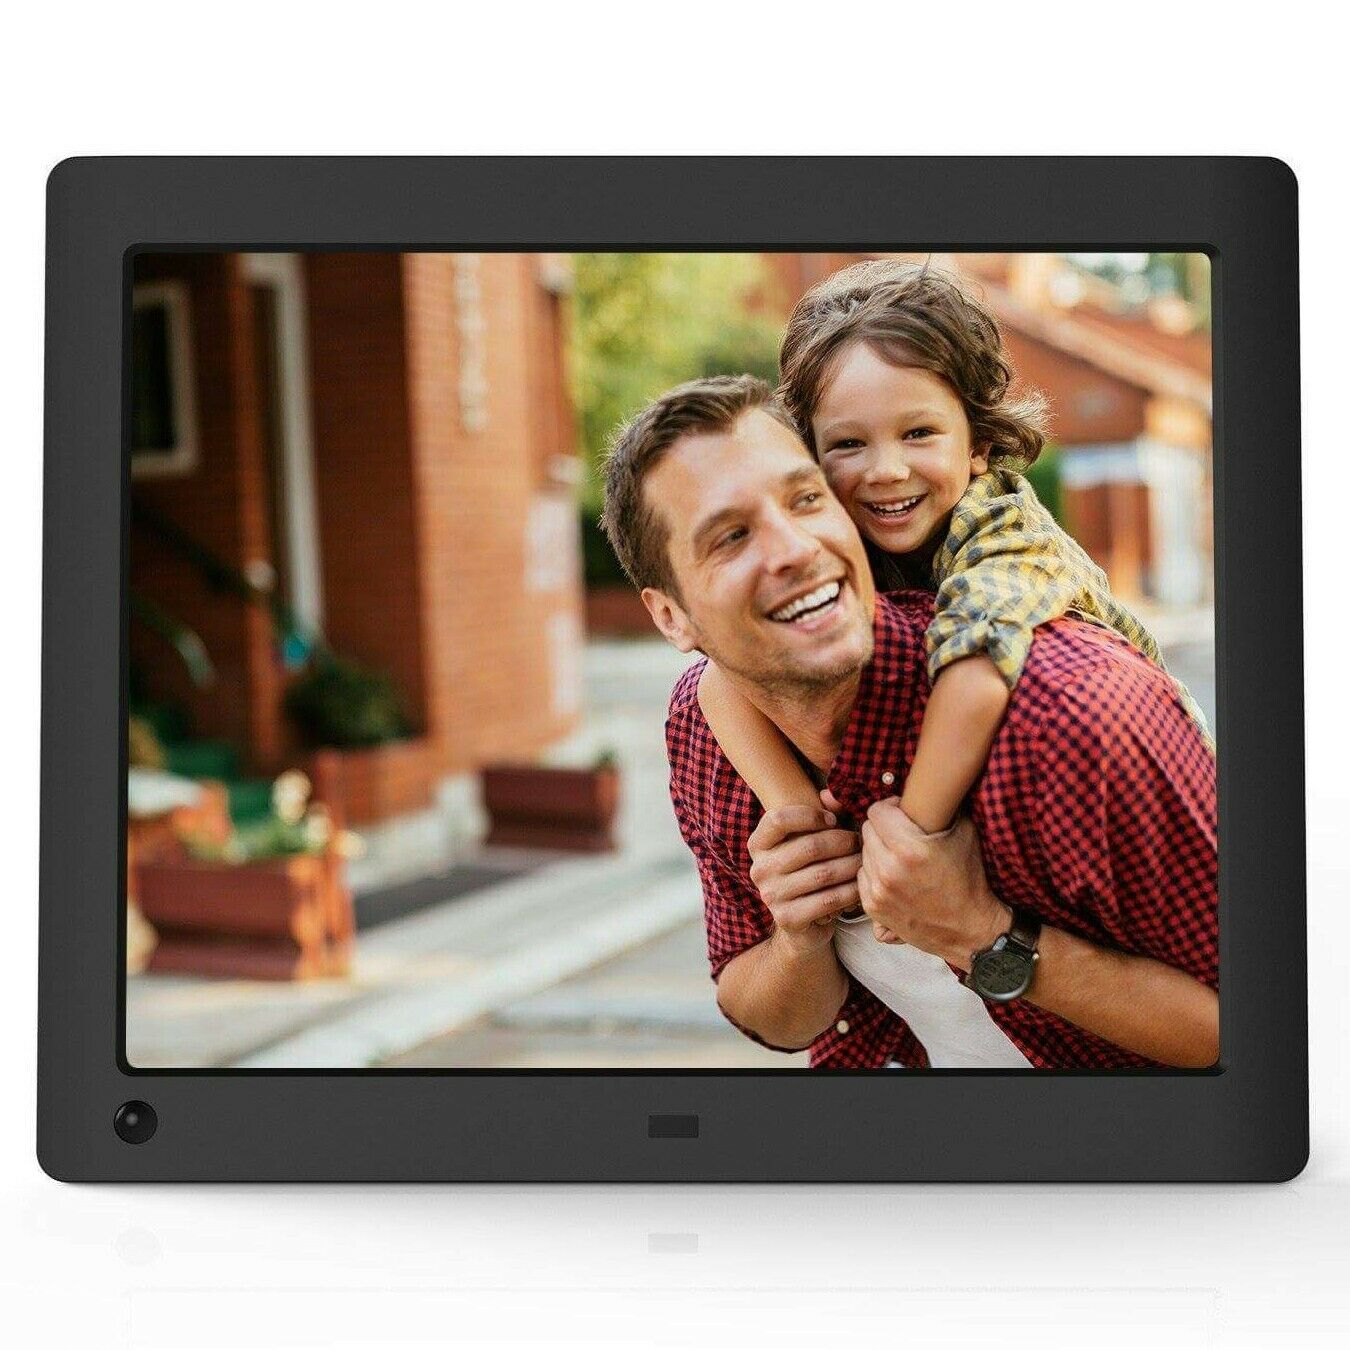 NIX Advance - 8 inch Hi-Res Digital Photo Frame with Motion Sensor (X08E) 1